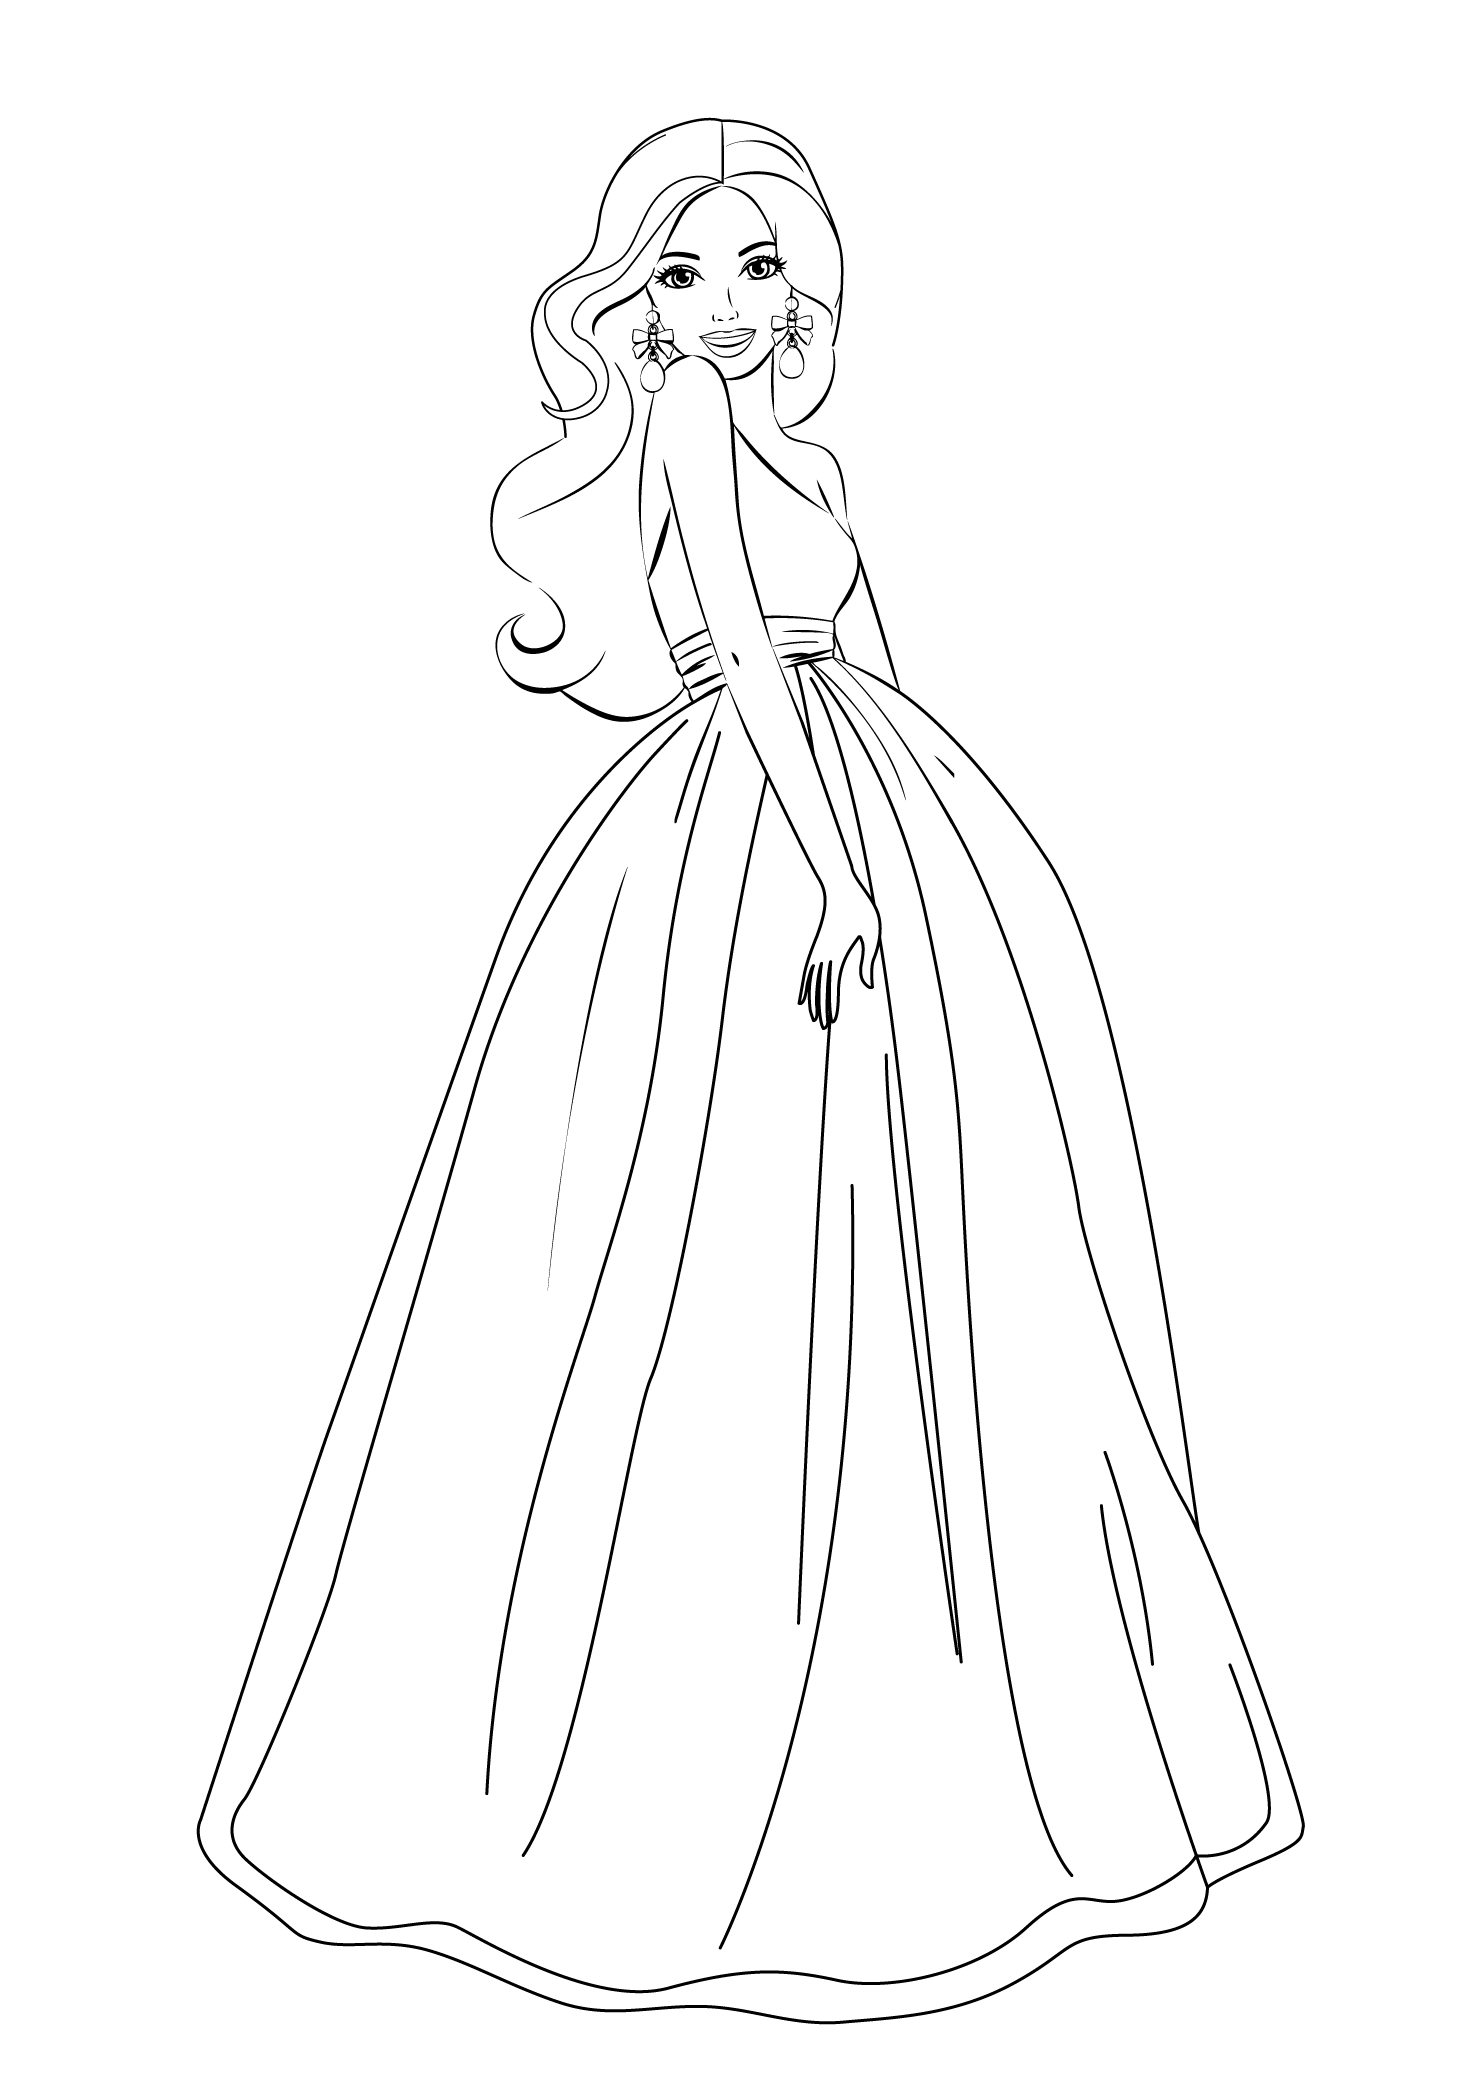 barbie coloring pages for girls free printable barbie pinterest barbie coloring free